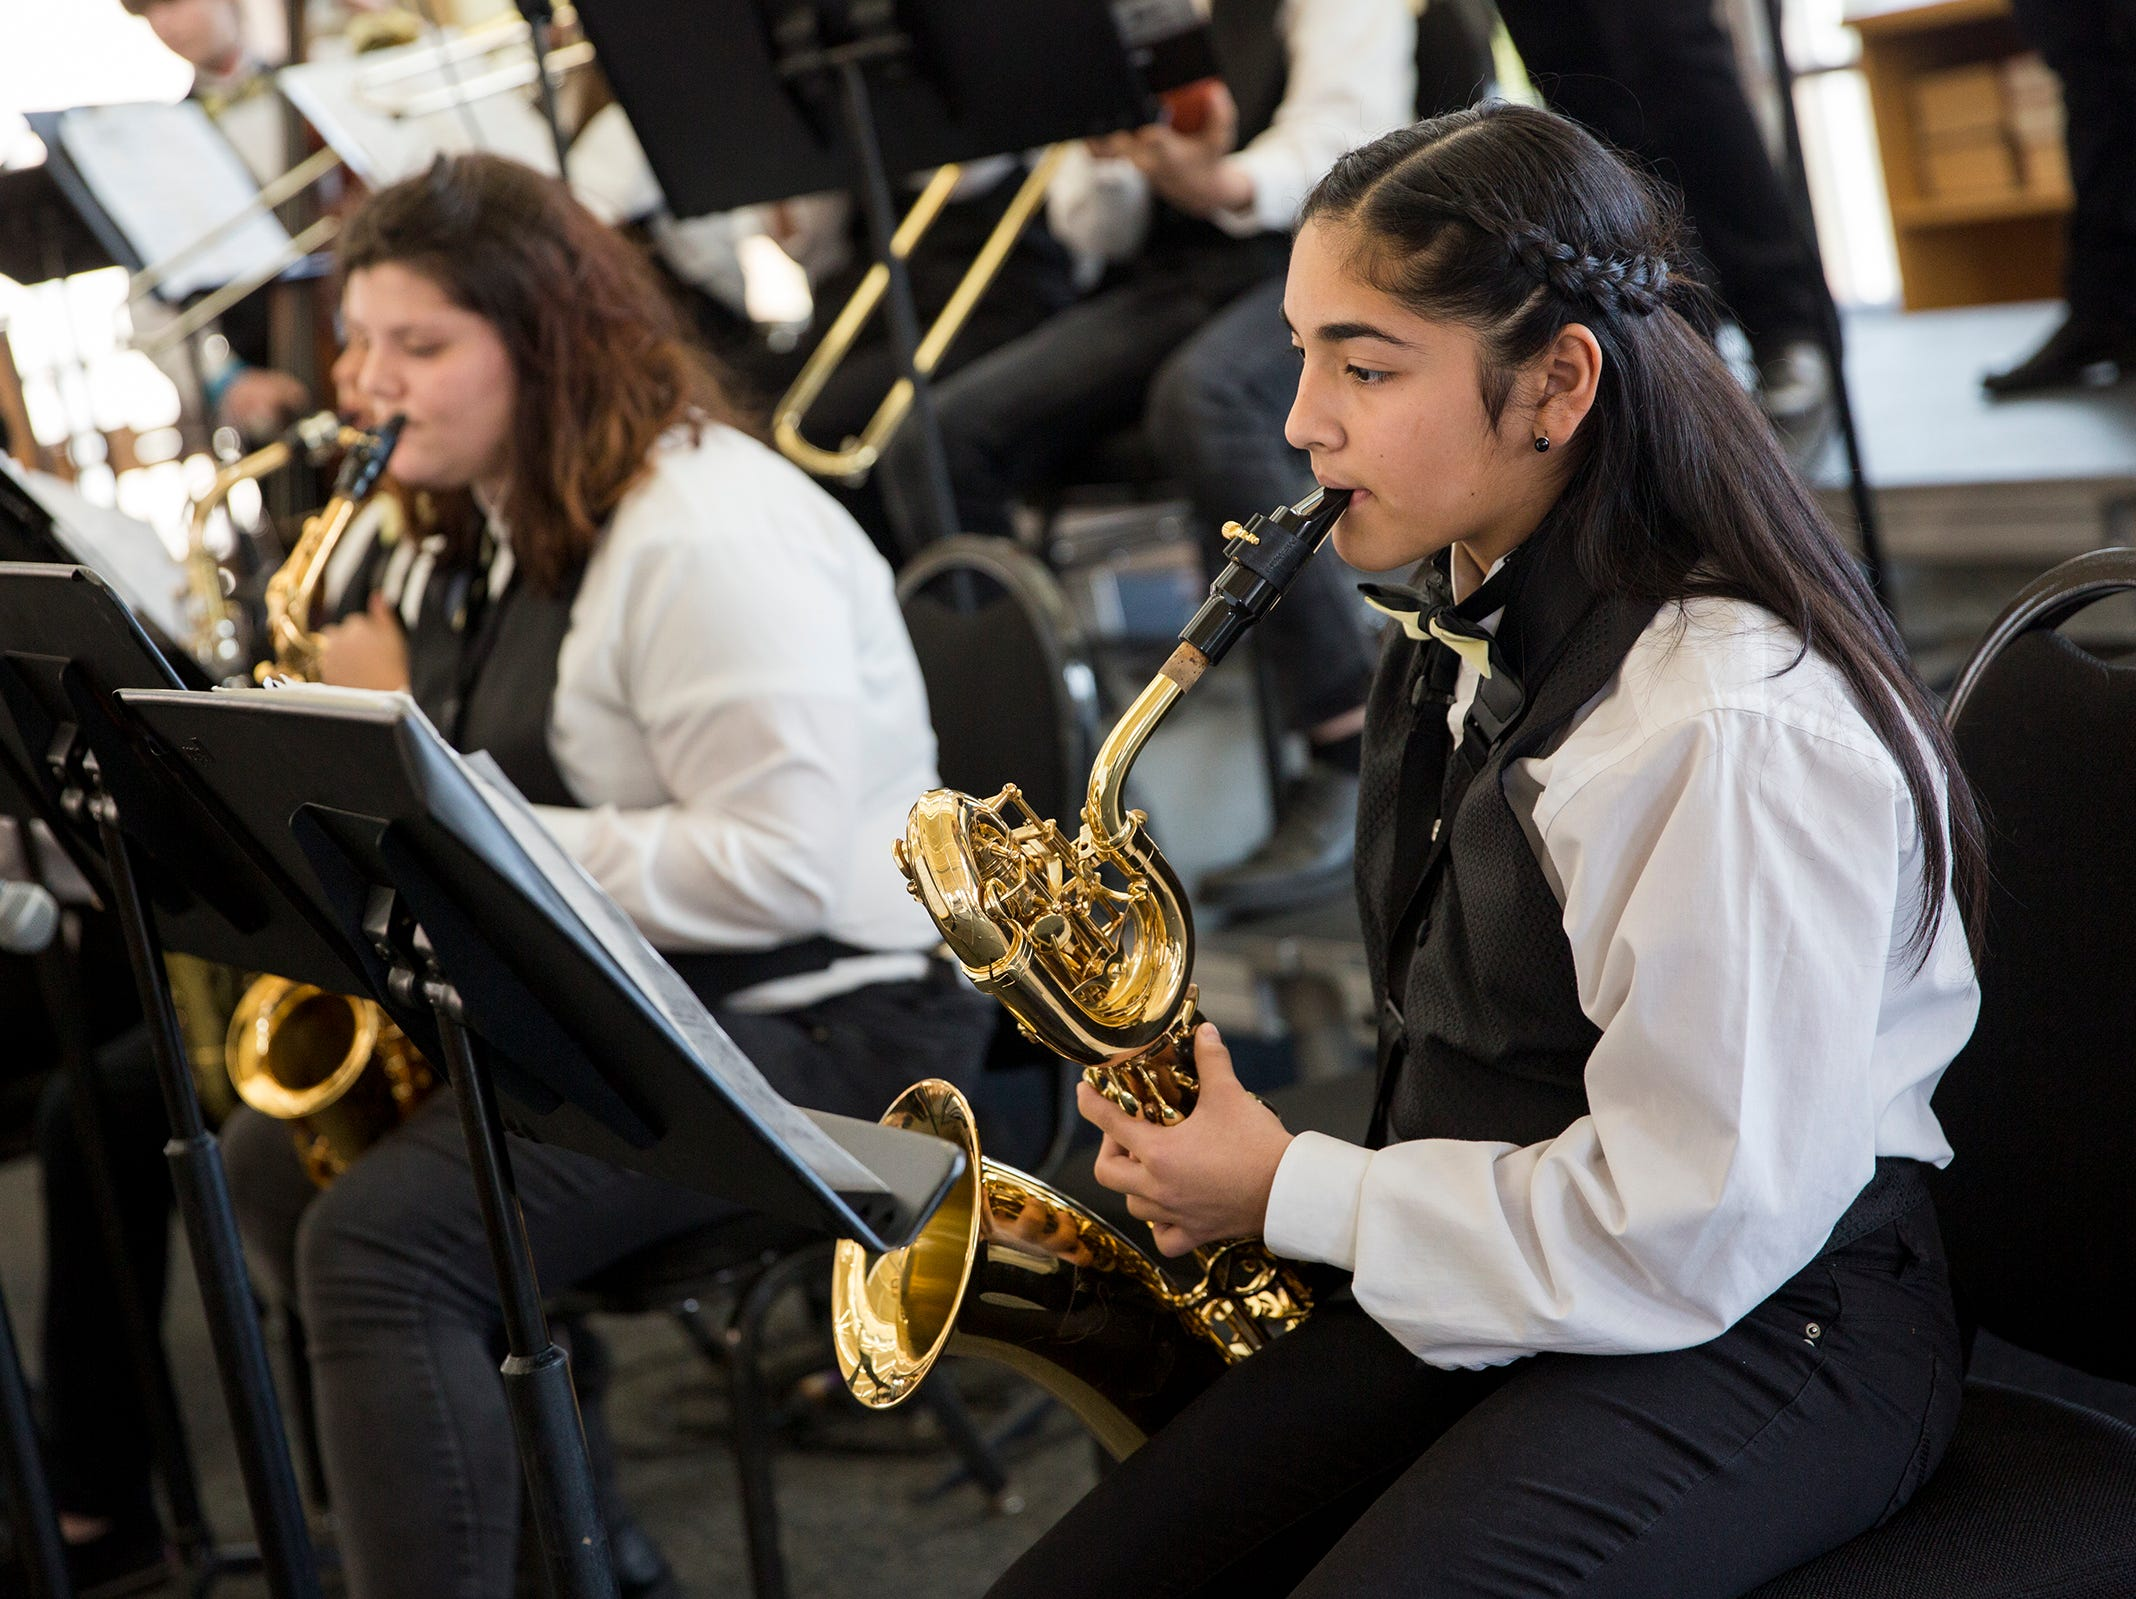 Waldo middle school seventh grade student Valeria Piedra performs at the annual West Salem Jazz Festival at West Salem High School on Saturday, Feb. 9, 2019.